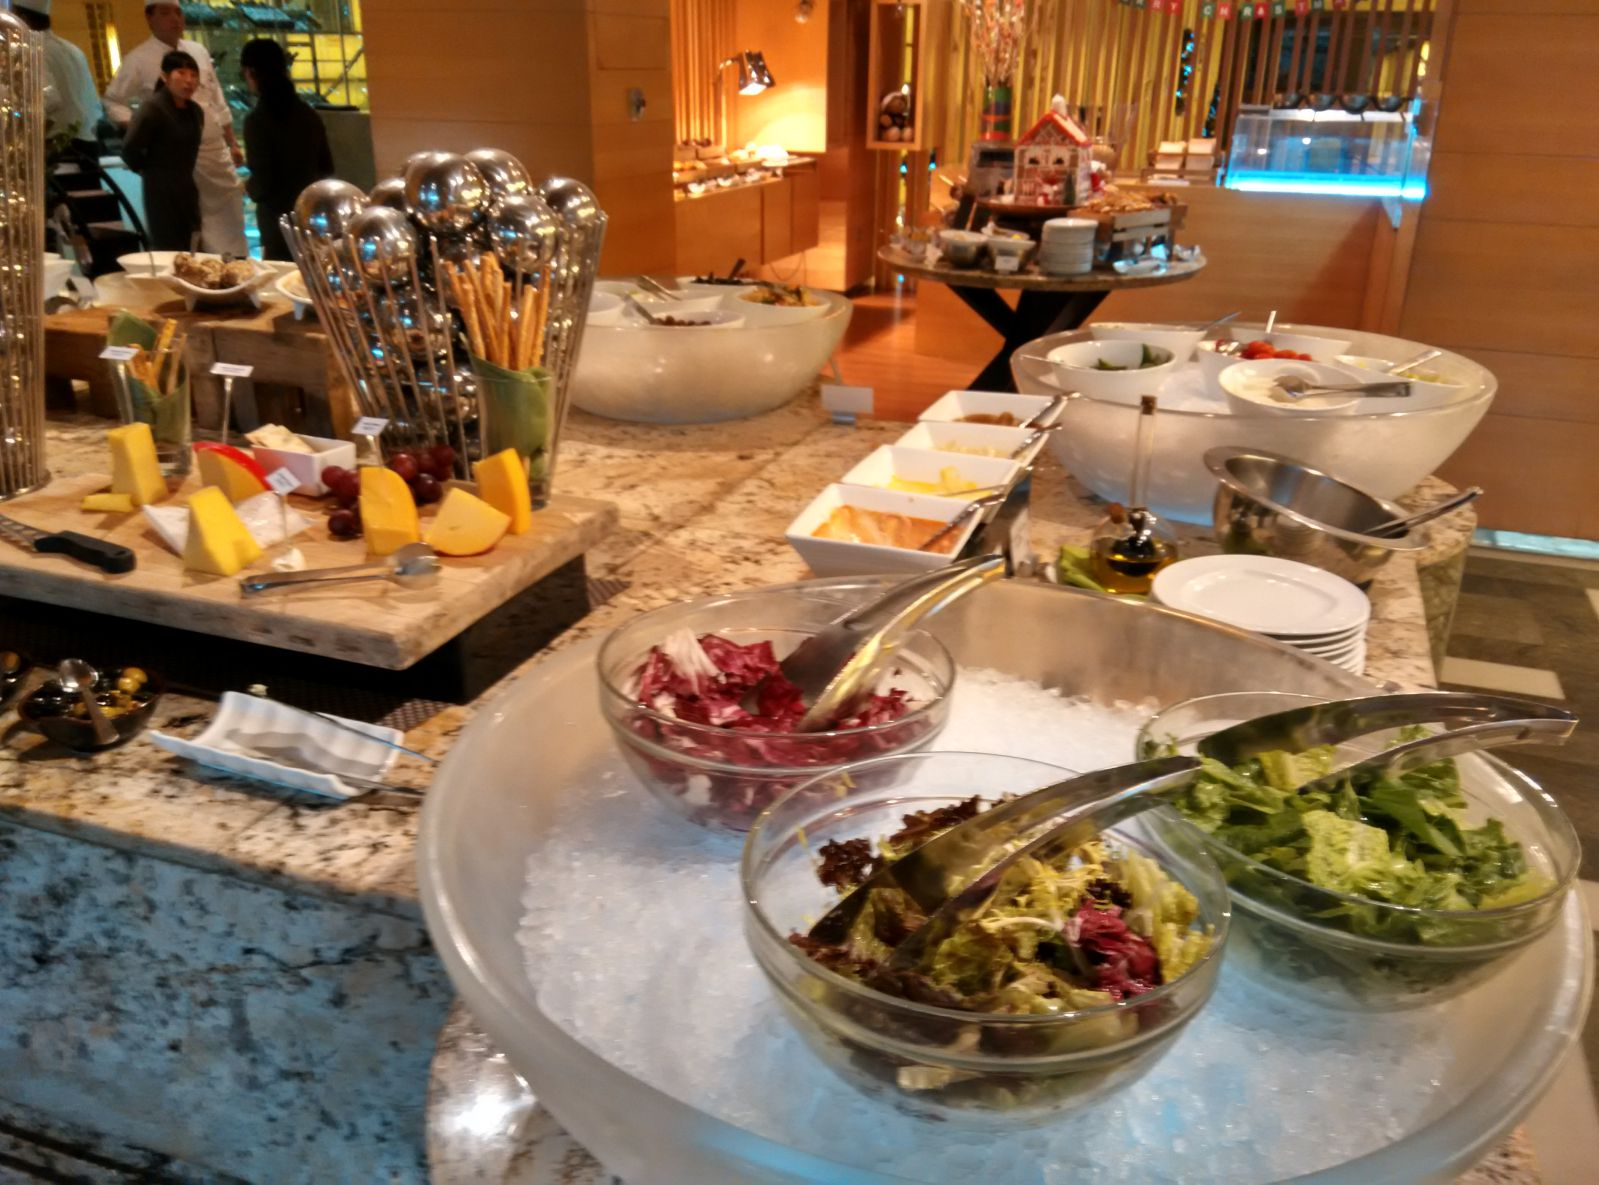 shenzhen-jw-marriott-breakfast-2